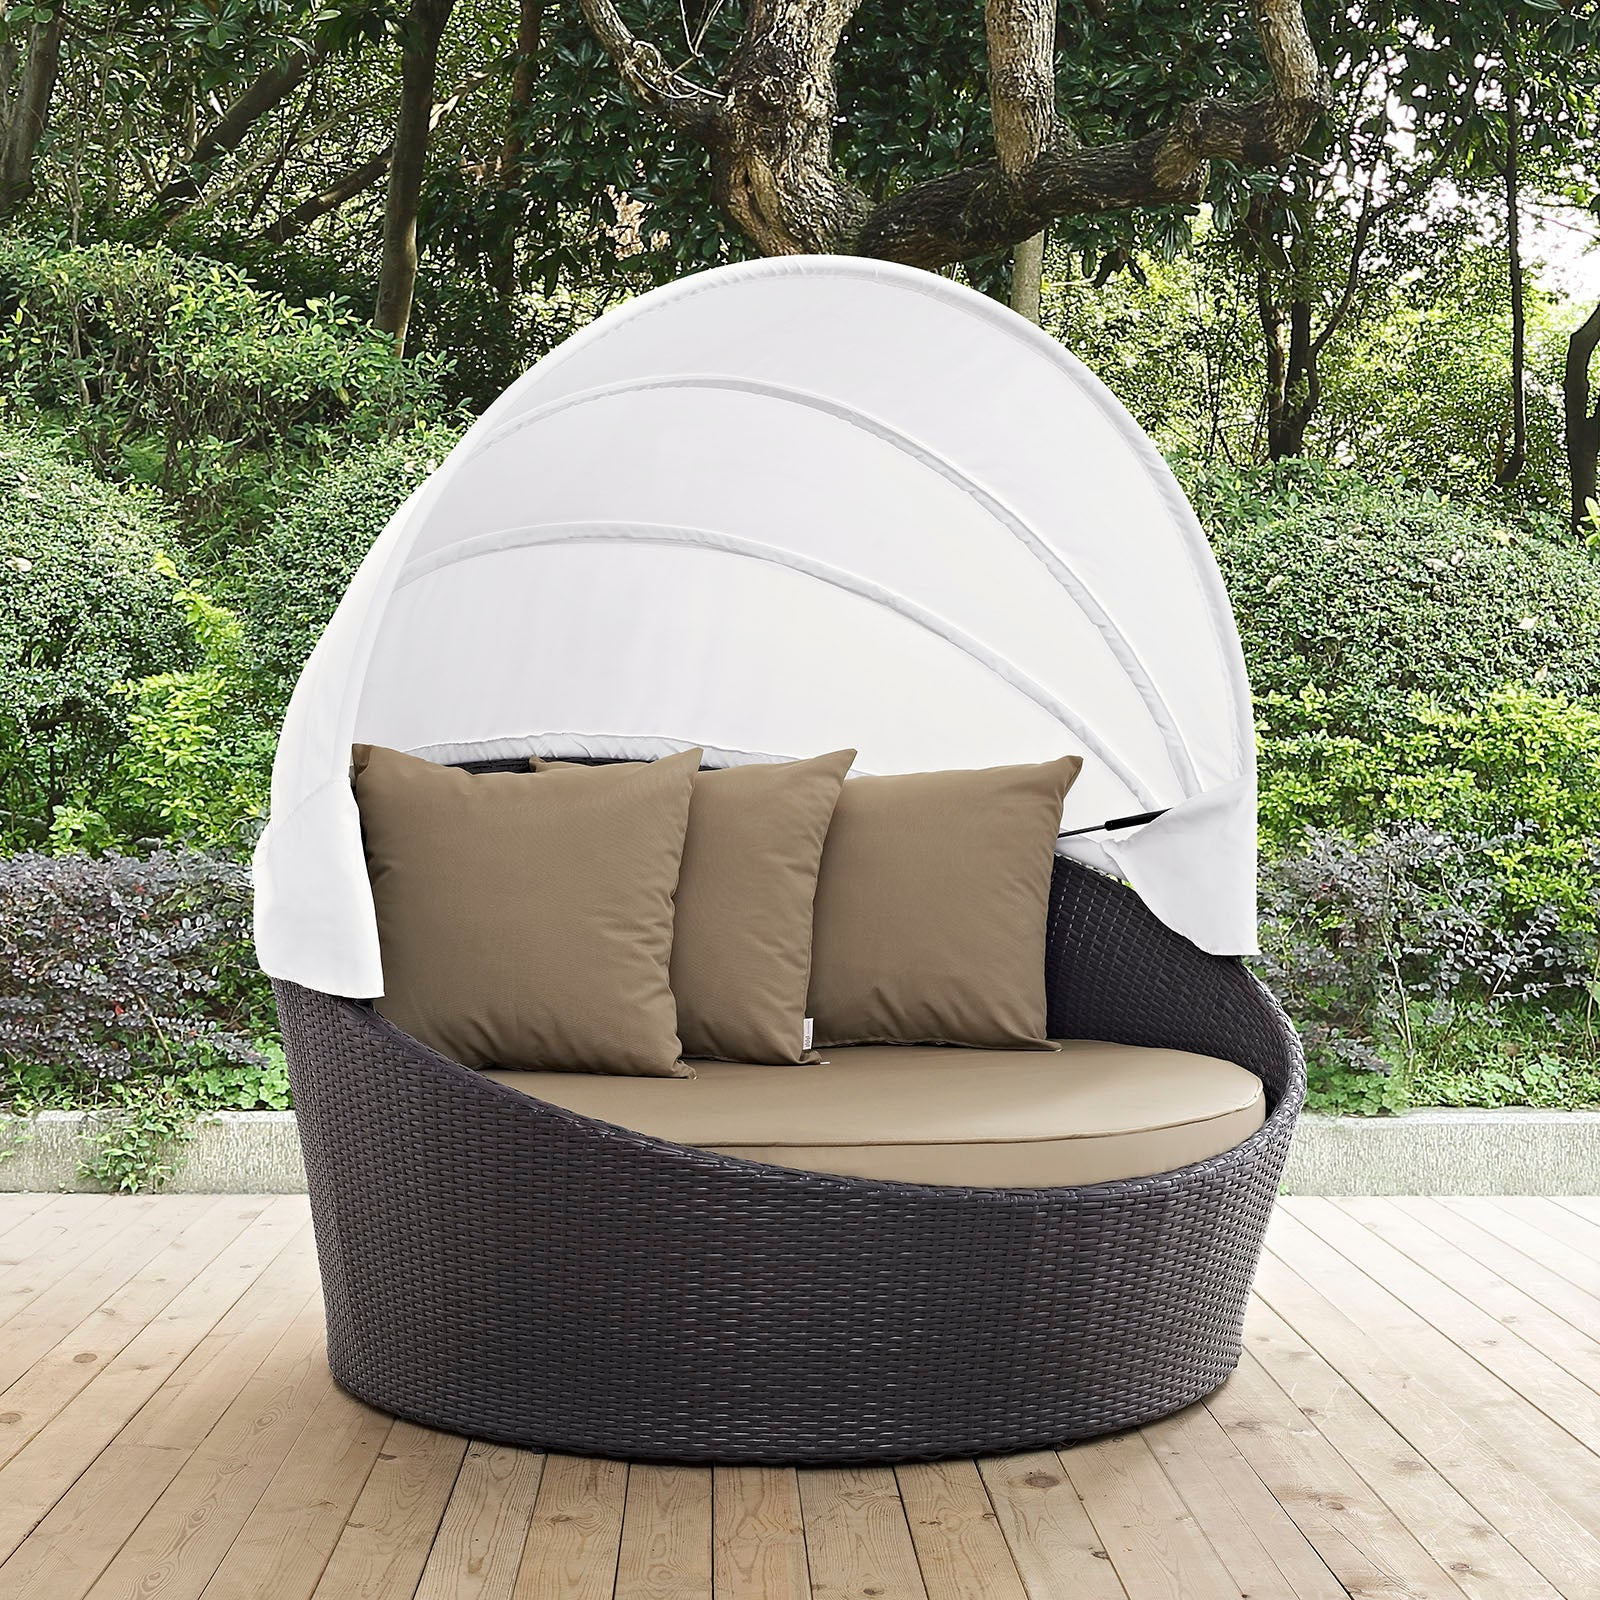 Antigua Outdoor Patio Daybed with Canopy